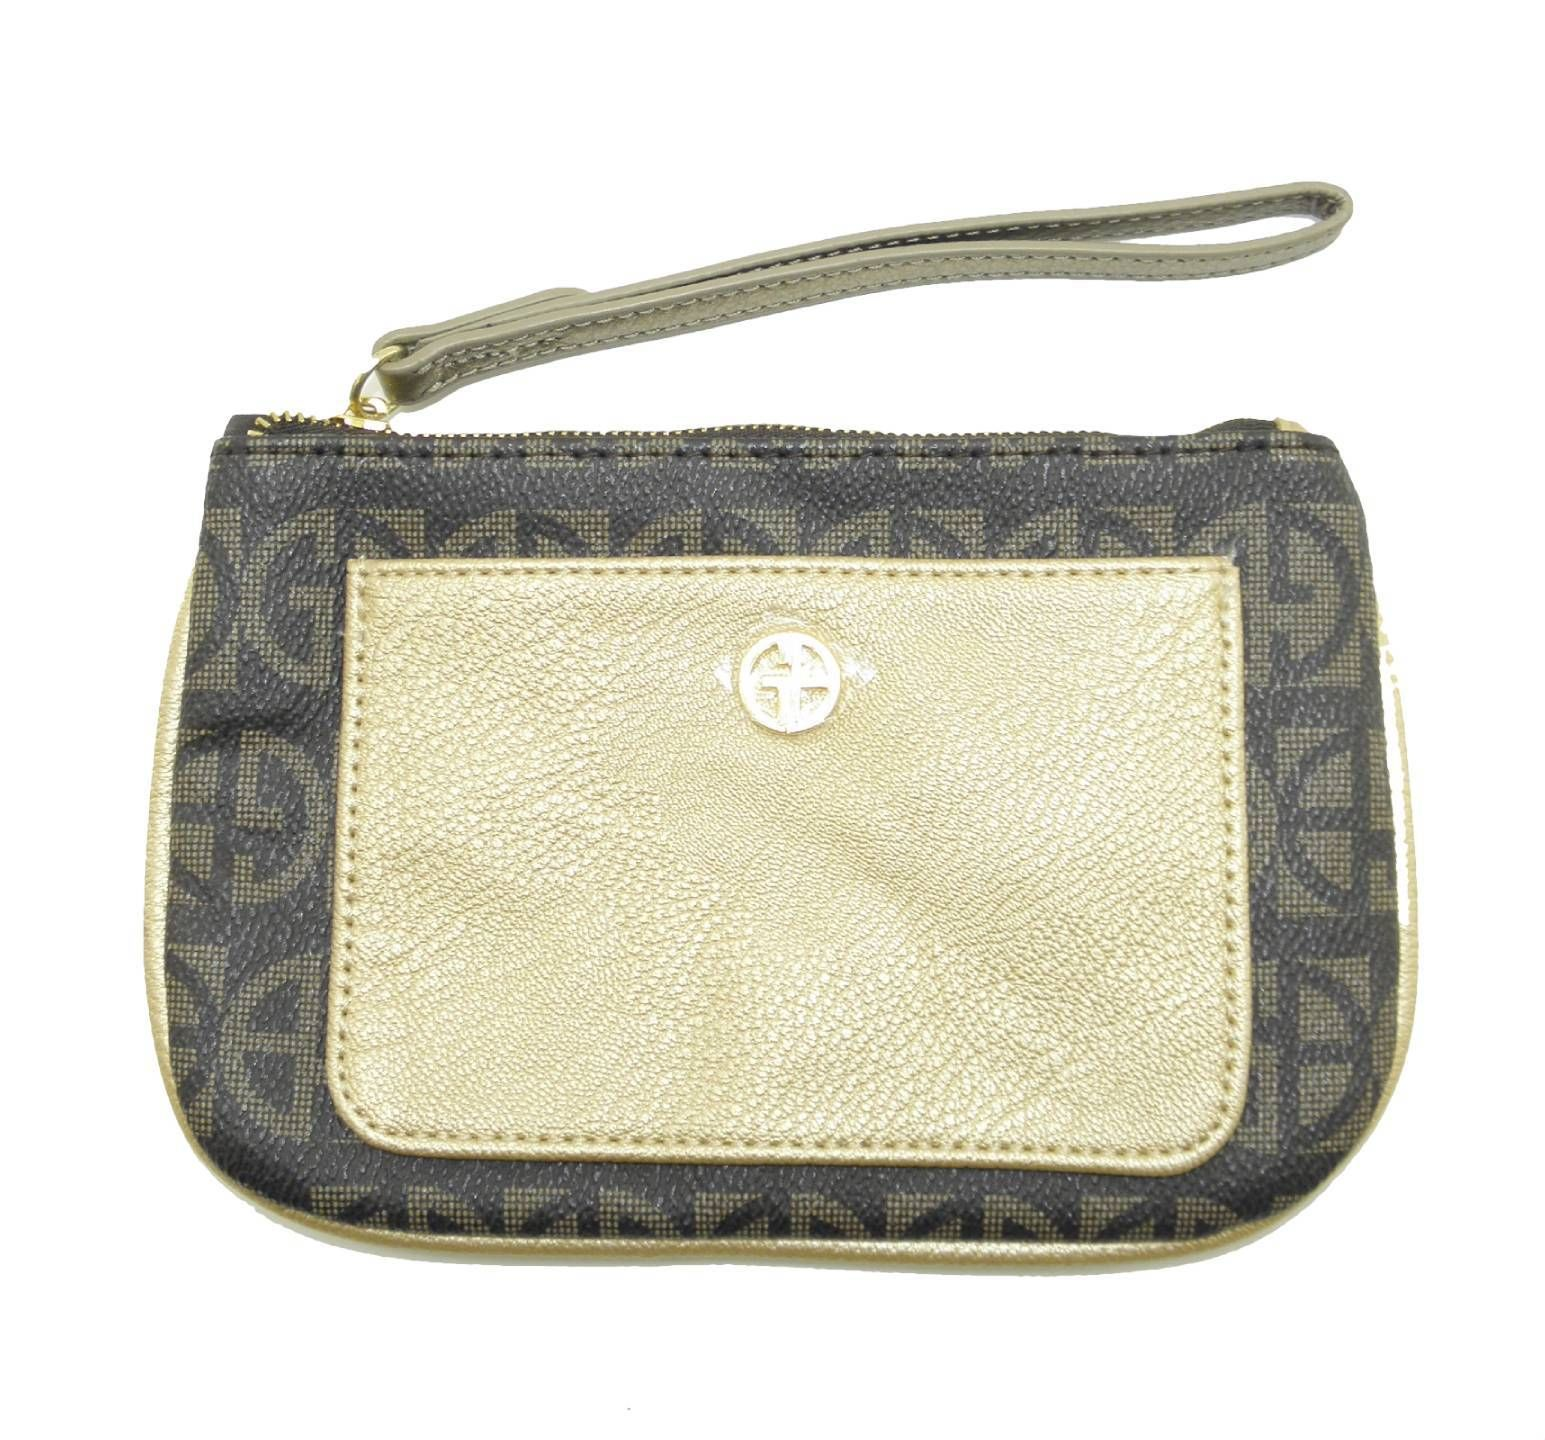 GIANI BERNINI BROWN GOLD SIGNATURE COATED CANVAS WRISTLET IPHONE CELL WALLET BAG